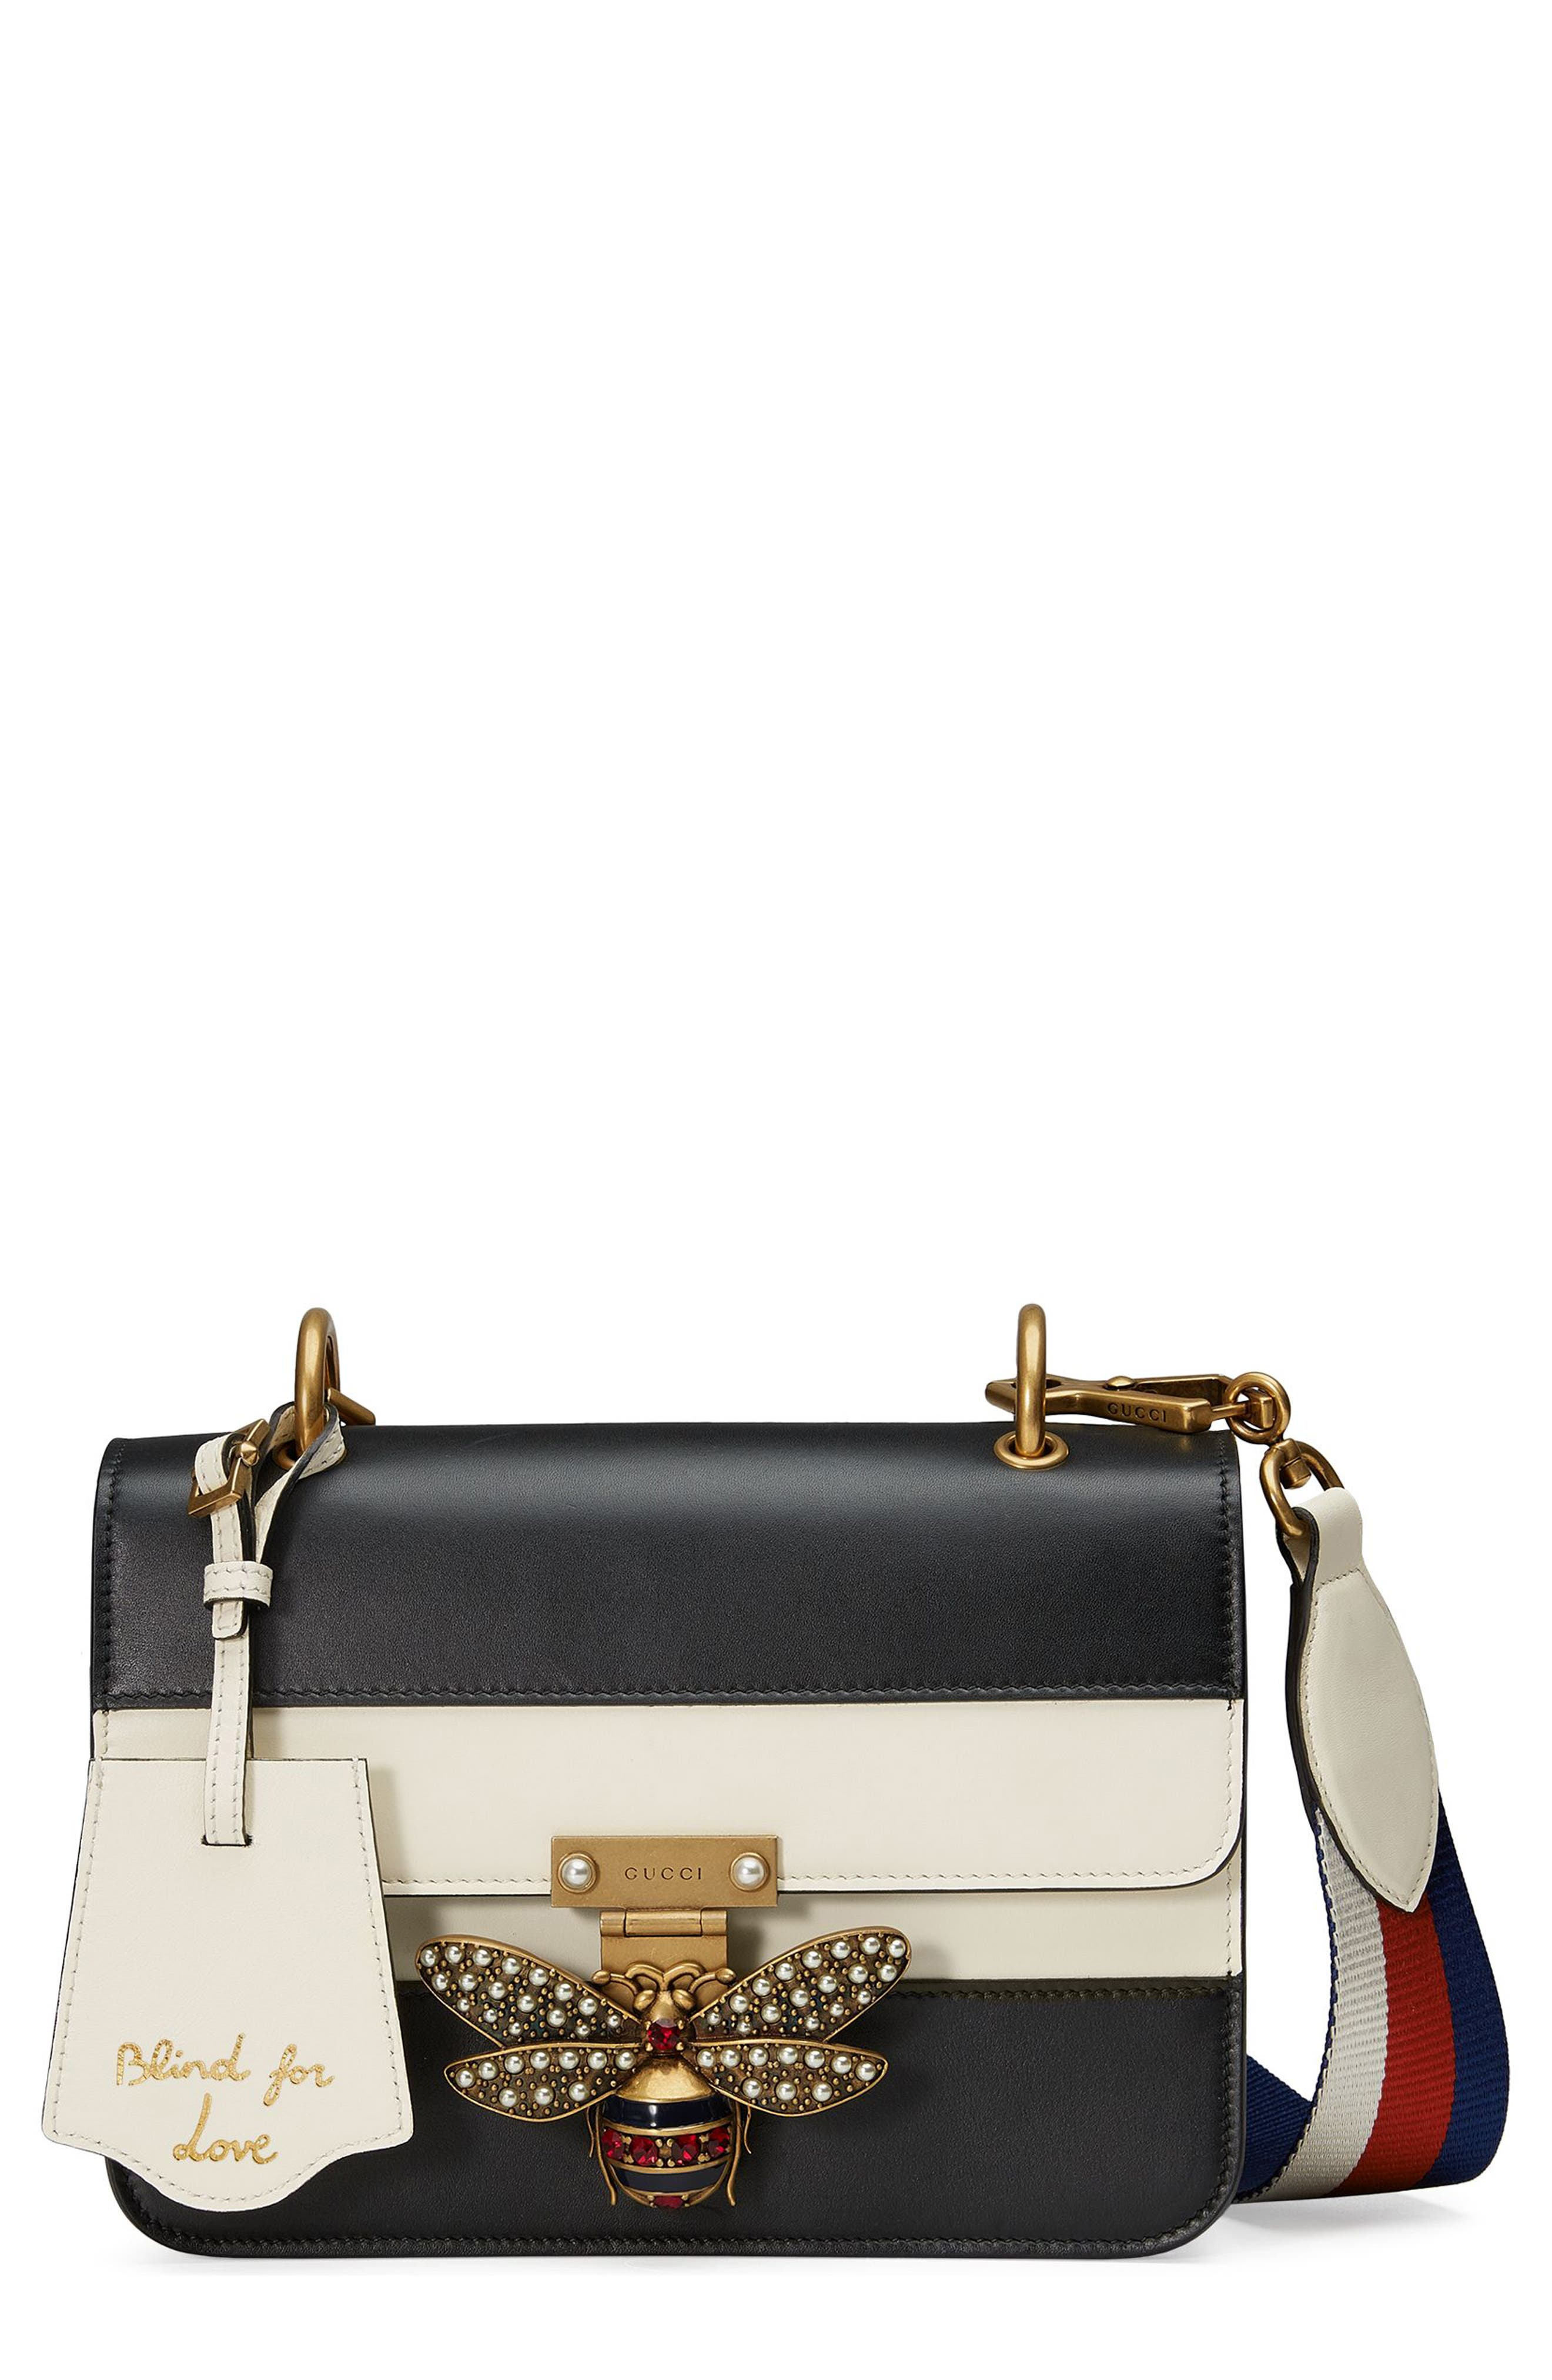 GUCCI Queen Margaret Stripe Leather Shoulder Bag